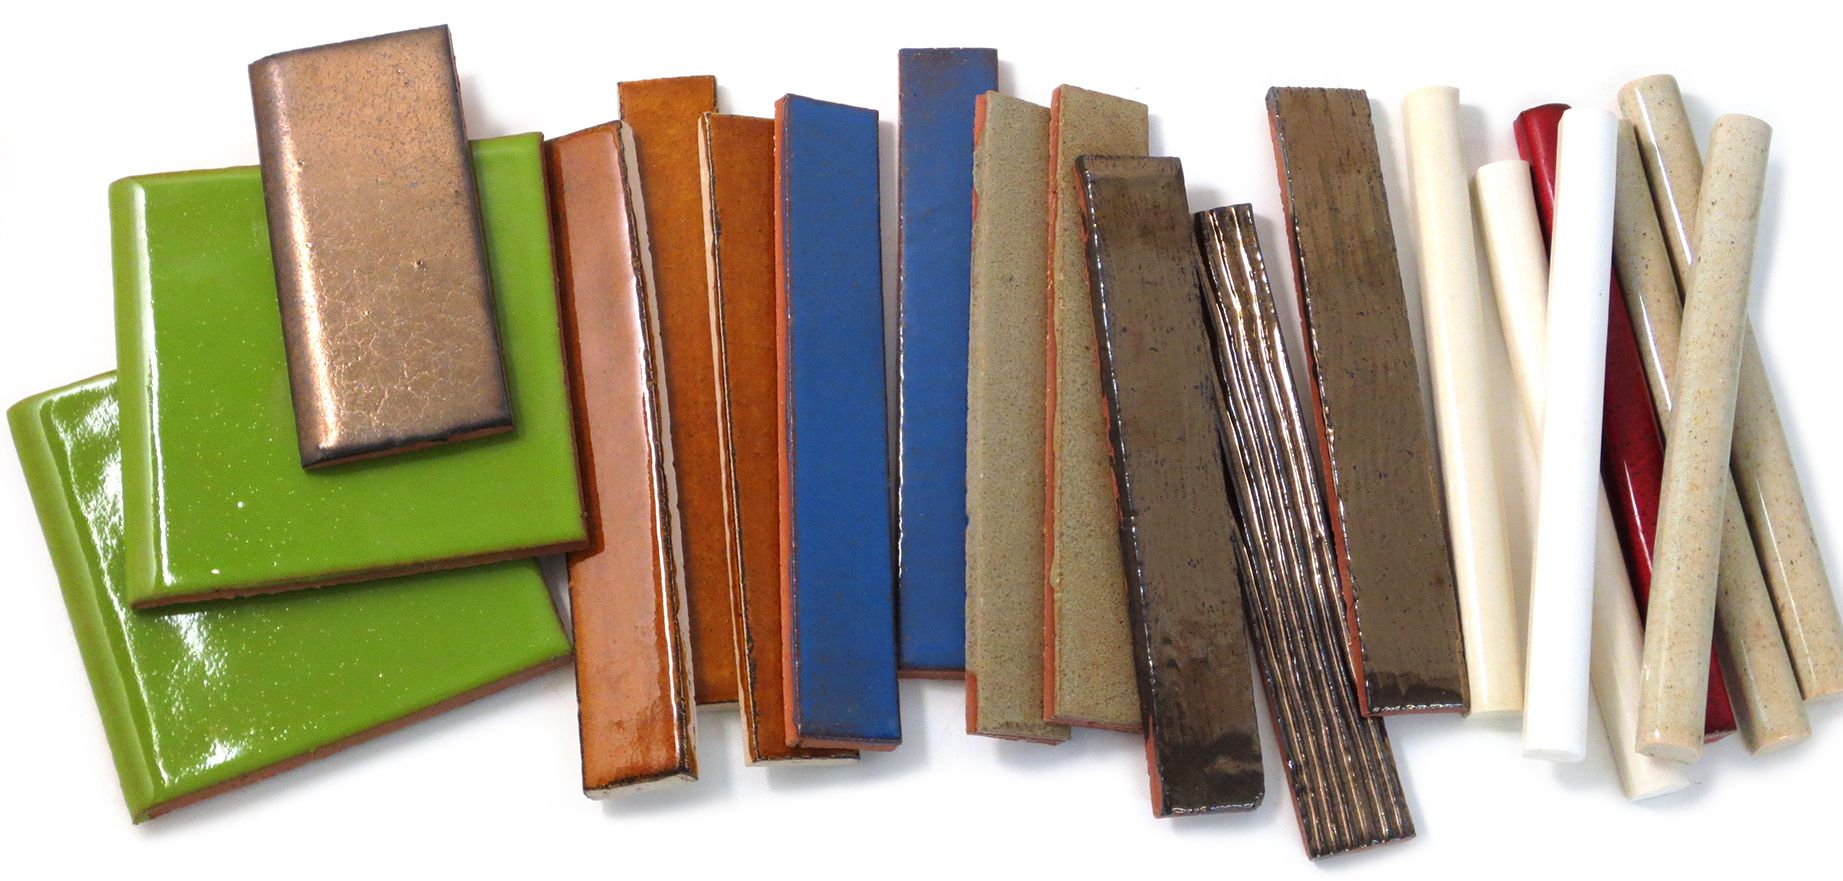 Decorative Bullnose Tile Trim Our Guide To Tile Finishing Which Type Should You Choose  Mosaics